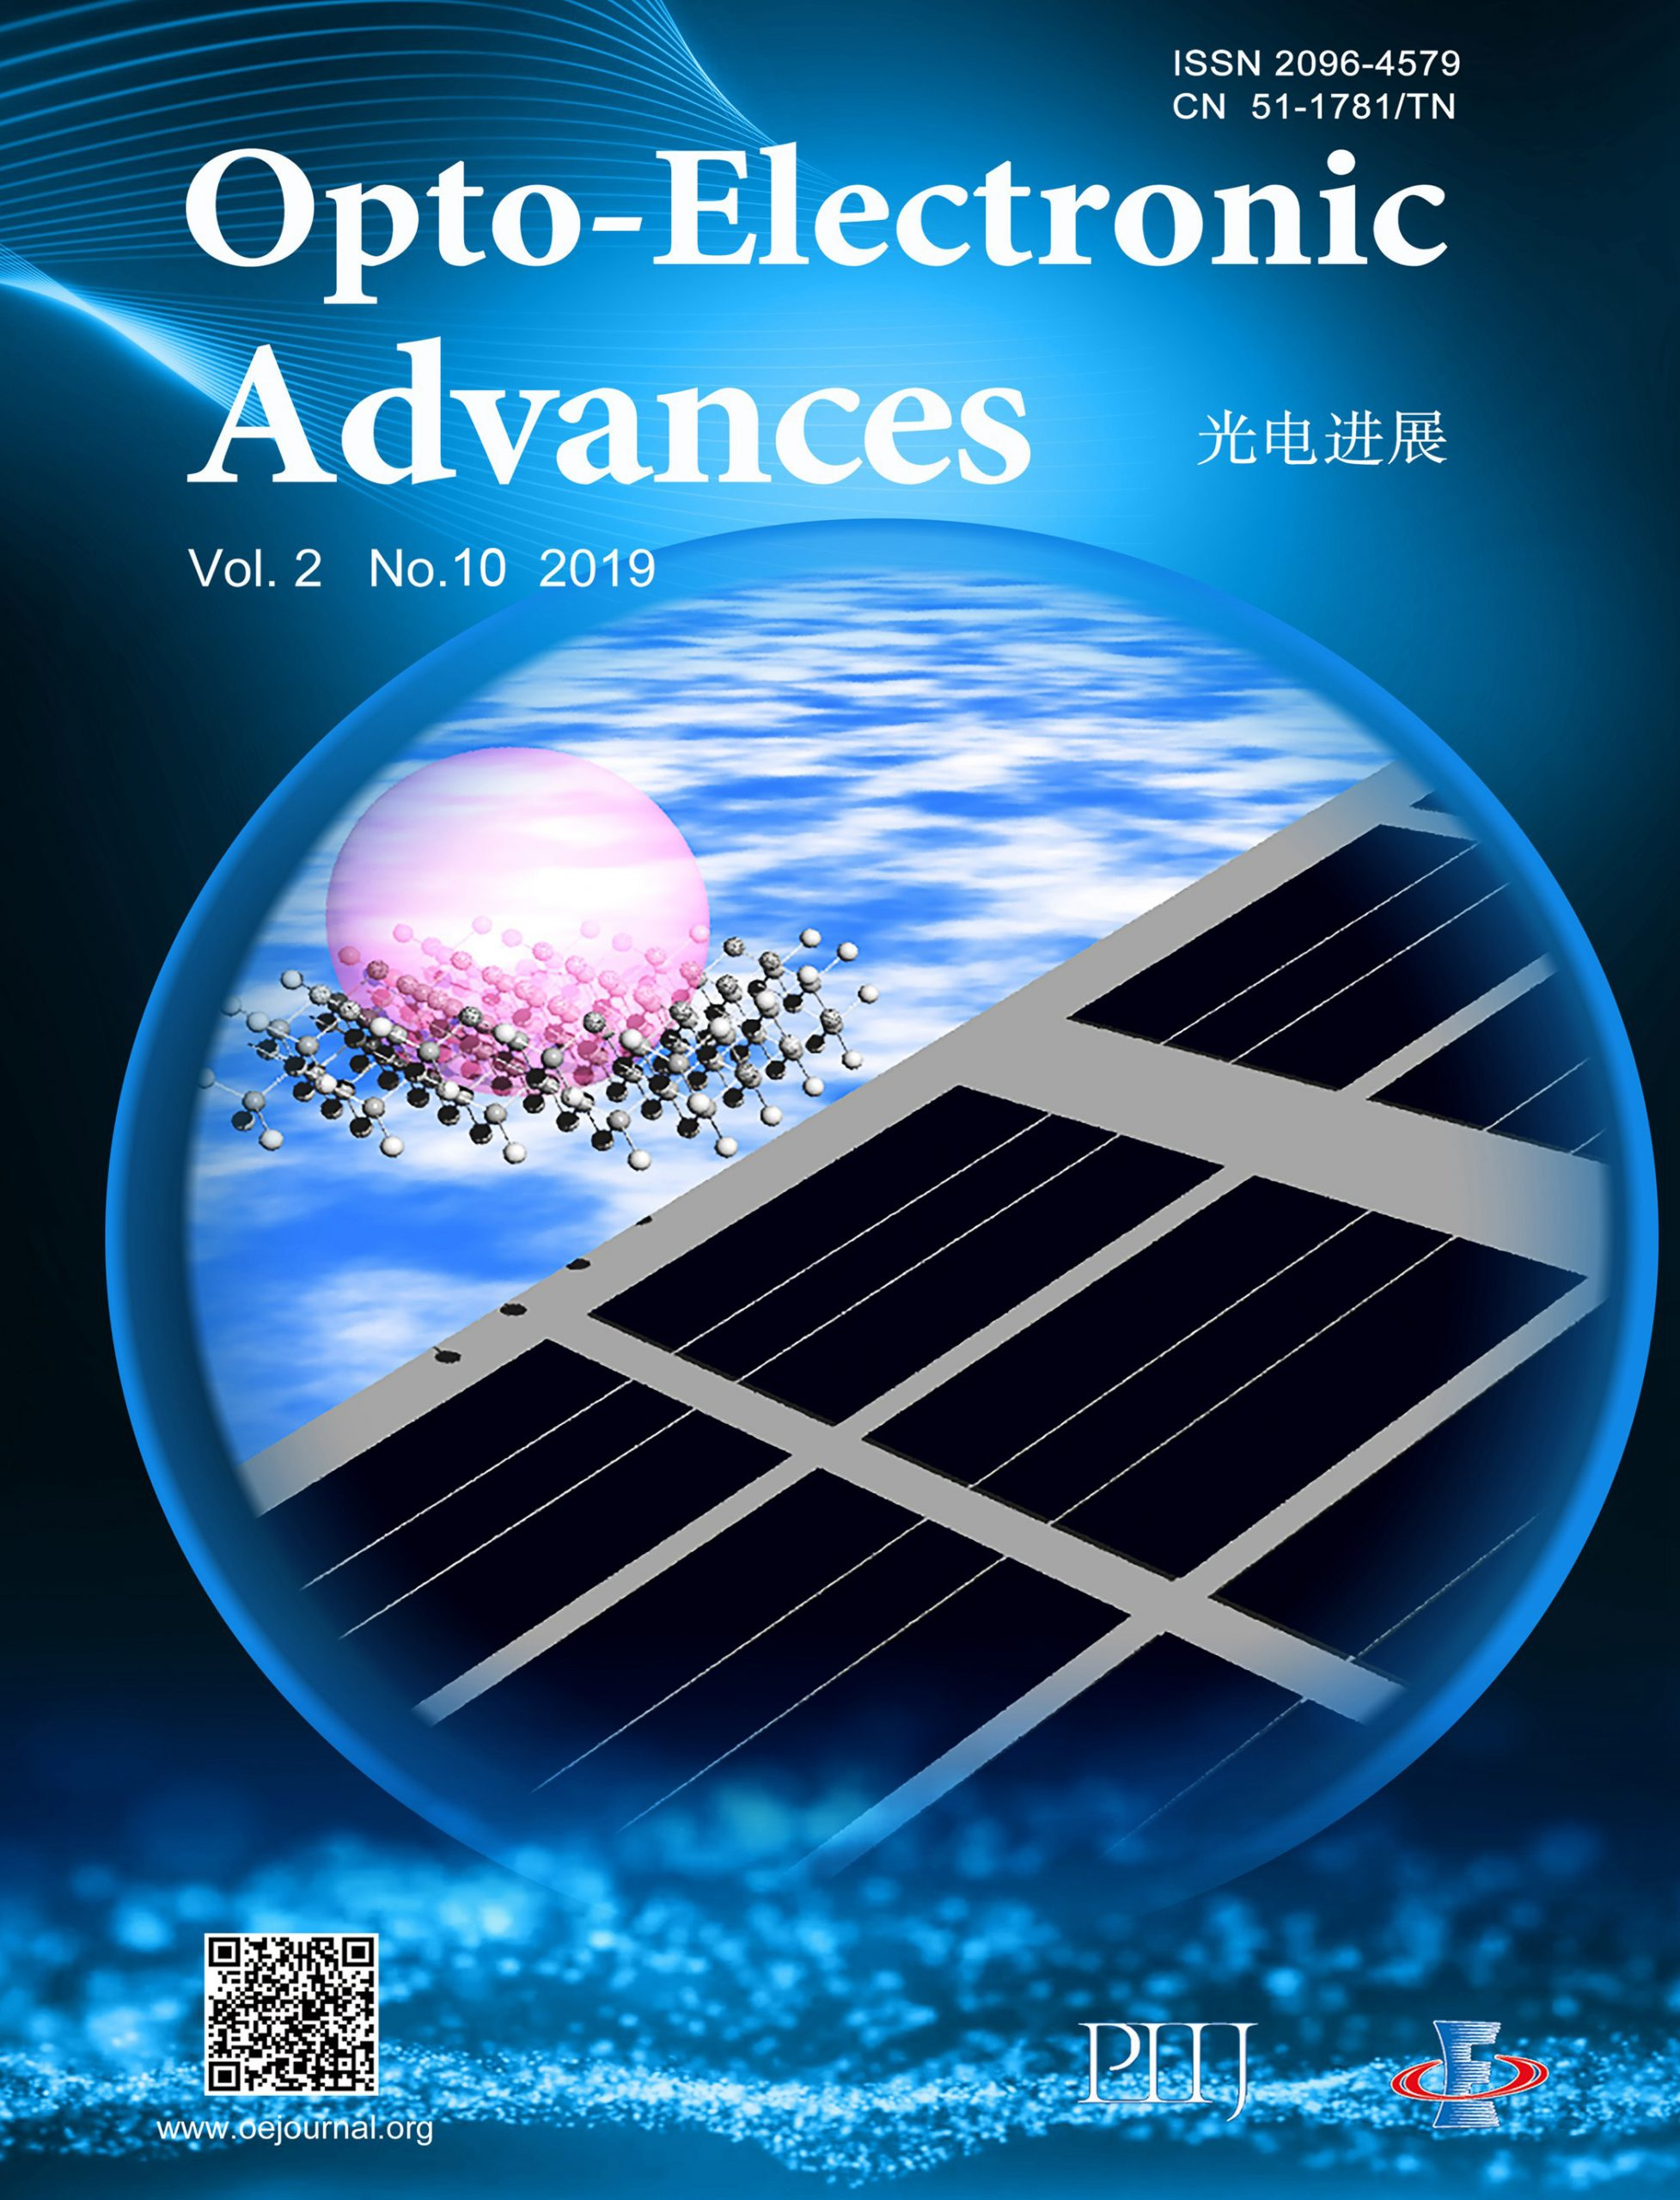 Cover story of the October issue in 2019 of Opto-Electronic Advances